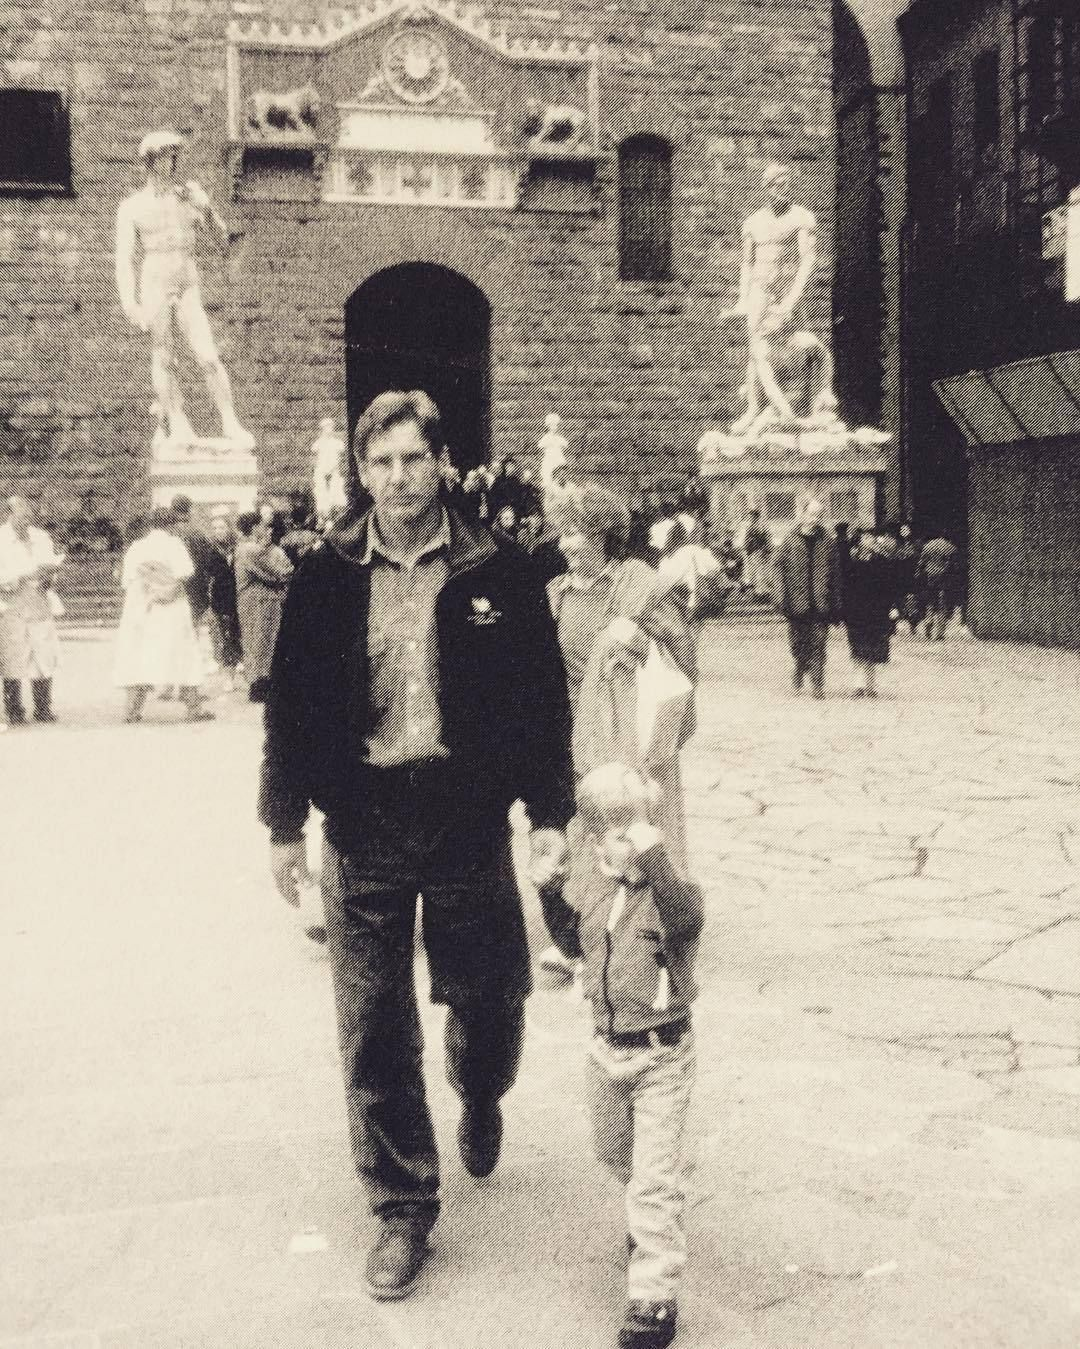 Rare Pic Of Harrison Ford And His Son Malcolm Walking Through Piazza Signoria Florence Italy X Harrison Ford Harrison Ford Son Harrison Ford Indiana Jones Harrison ford's son malcolm jumps off a cliff into the sea. harrison ford harrison ford son